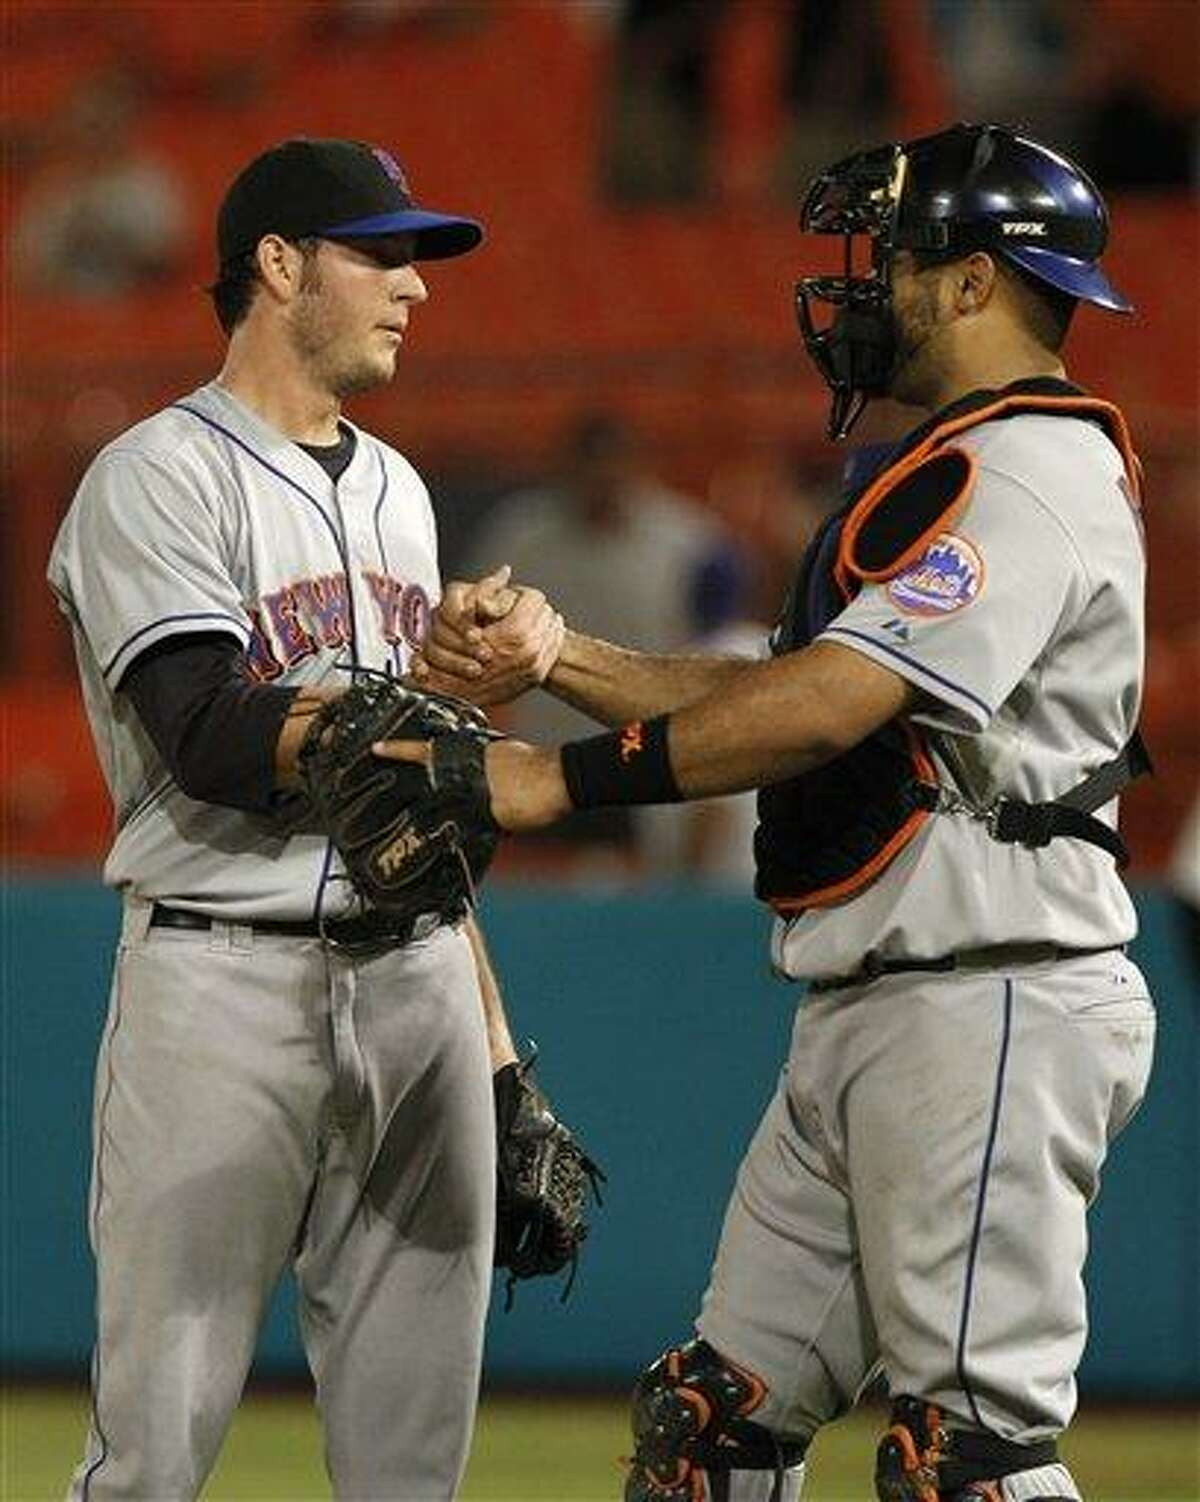 New York Mets relief pitcher Josh Stinson, left, shakes hands with catcher Ronny Paulino, right, after the Mets defeated the Florida Marlins 7-4 in twelve innings during a baseball game in Miami, Tuesday, Sept. 6, 2011. (AP Photo/Lynne Sladky)